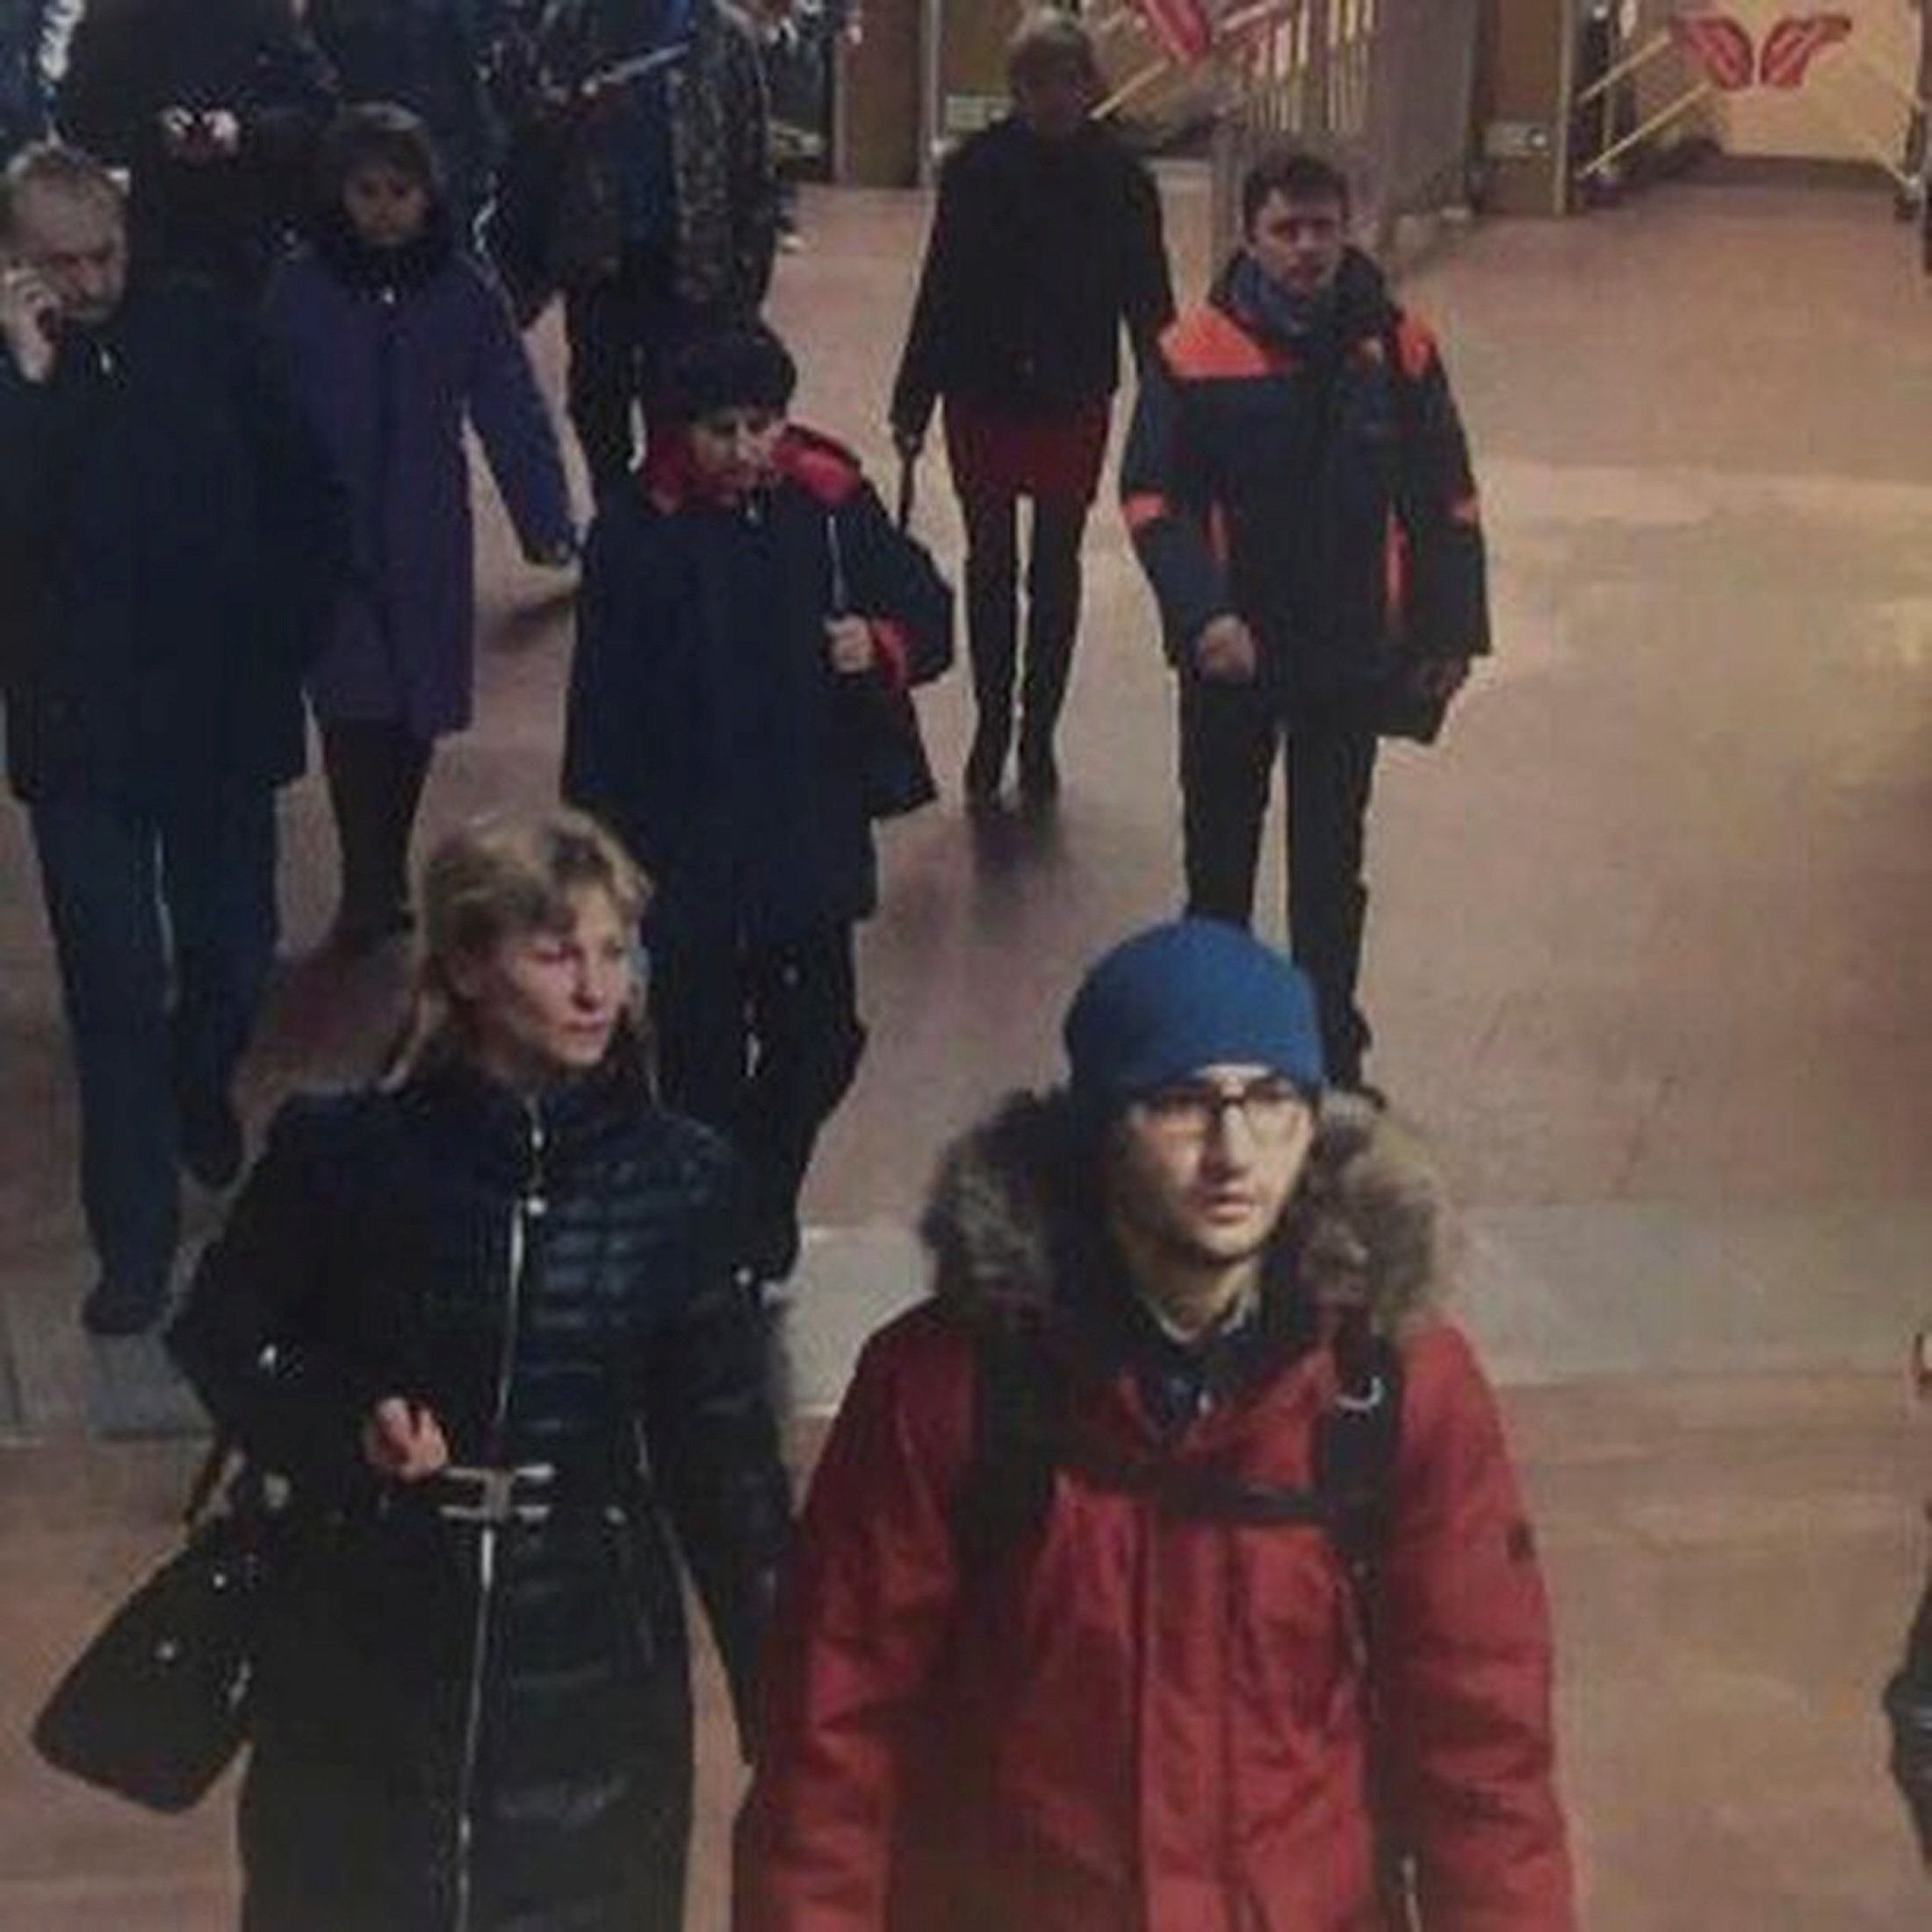 A still image of suspect Akbarzhon Jalilov walking at St Petersburg's metro station is shown in this police handout photo obtained by 5th Channel Russia April 4, 2017. 5th Channel Russia/via Reuters ATTENTION EDITORS - THIS IMAGE WAS PROVIDED BY A THIRD PARTY. EDITORIAL USE ONLY. NO RESALES. NO ARCHIVE. RUSSIA OUT. - RTX3403D